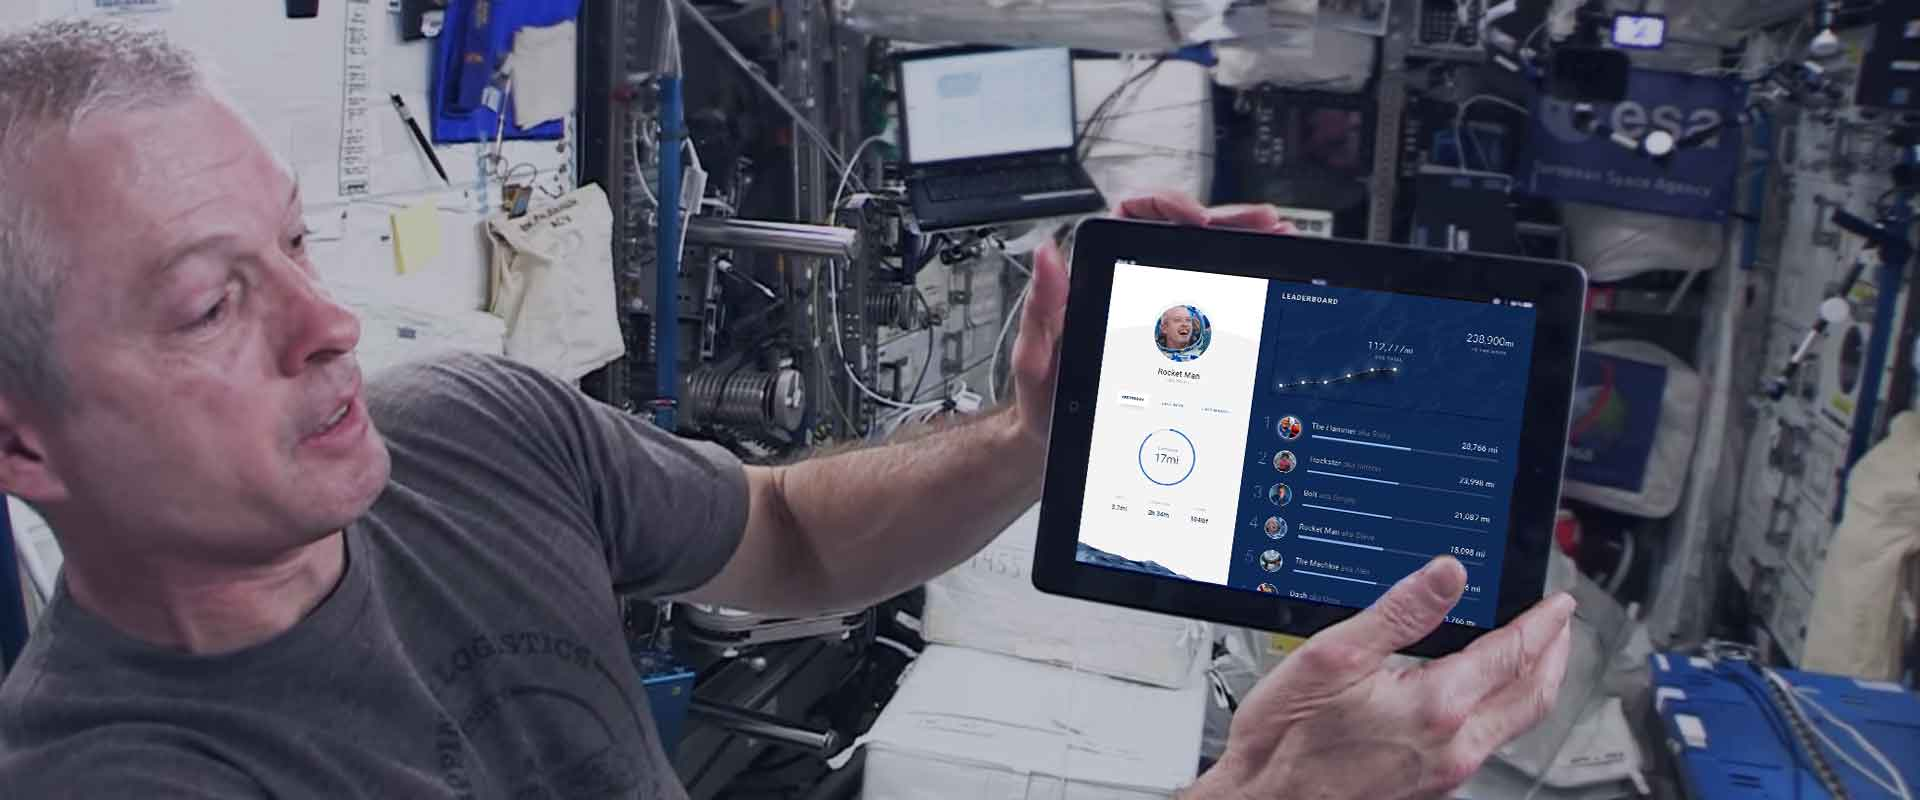 NASA Astronaut Holding Tablet with To The Moon experience